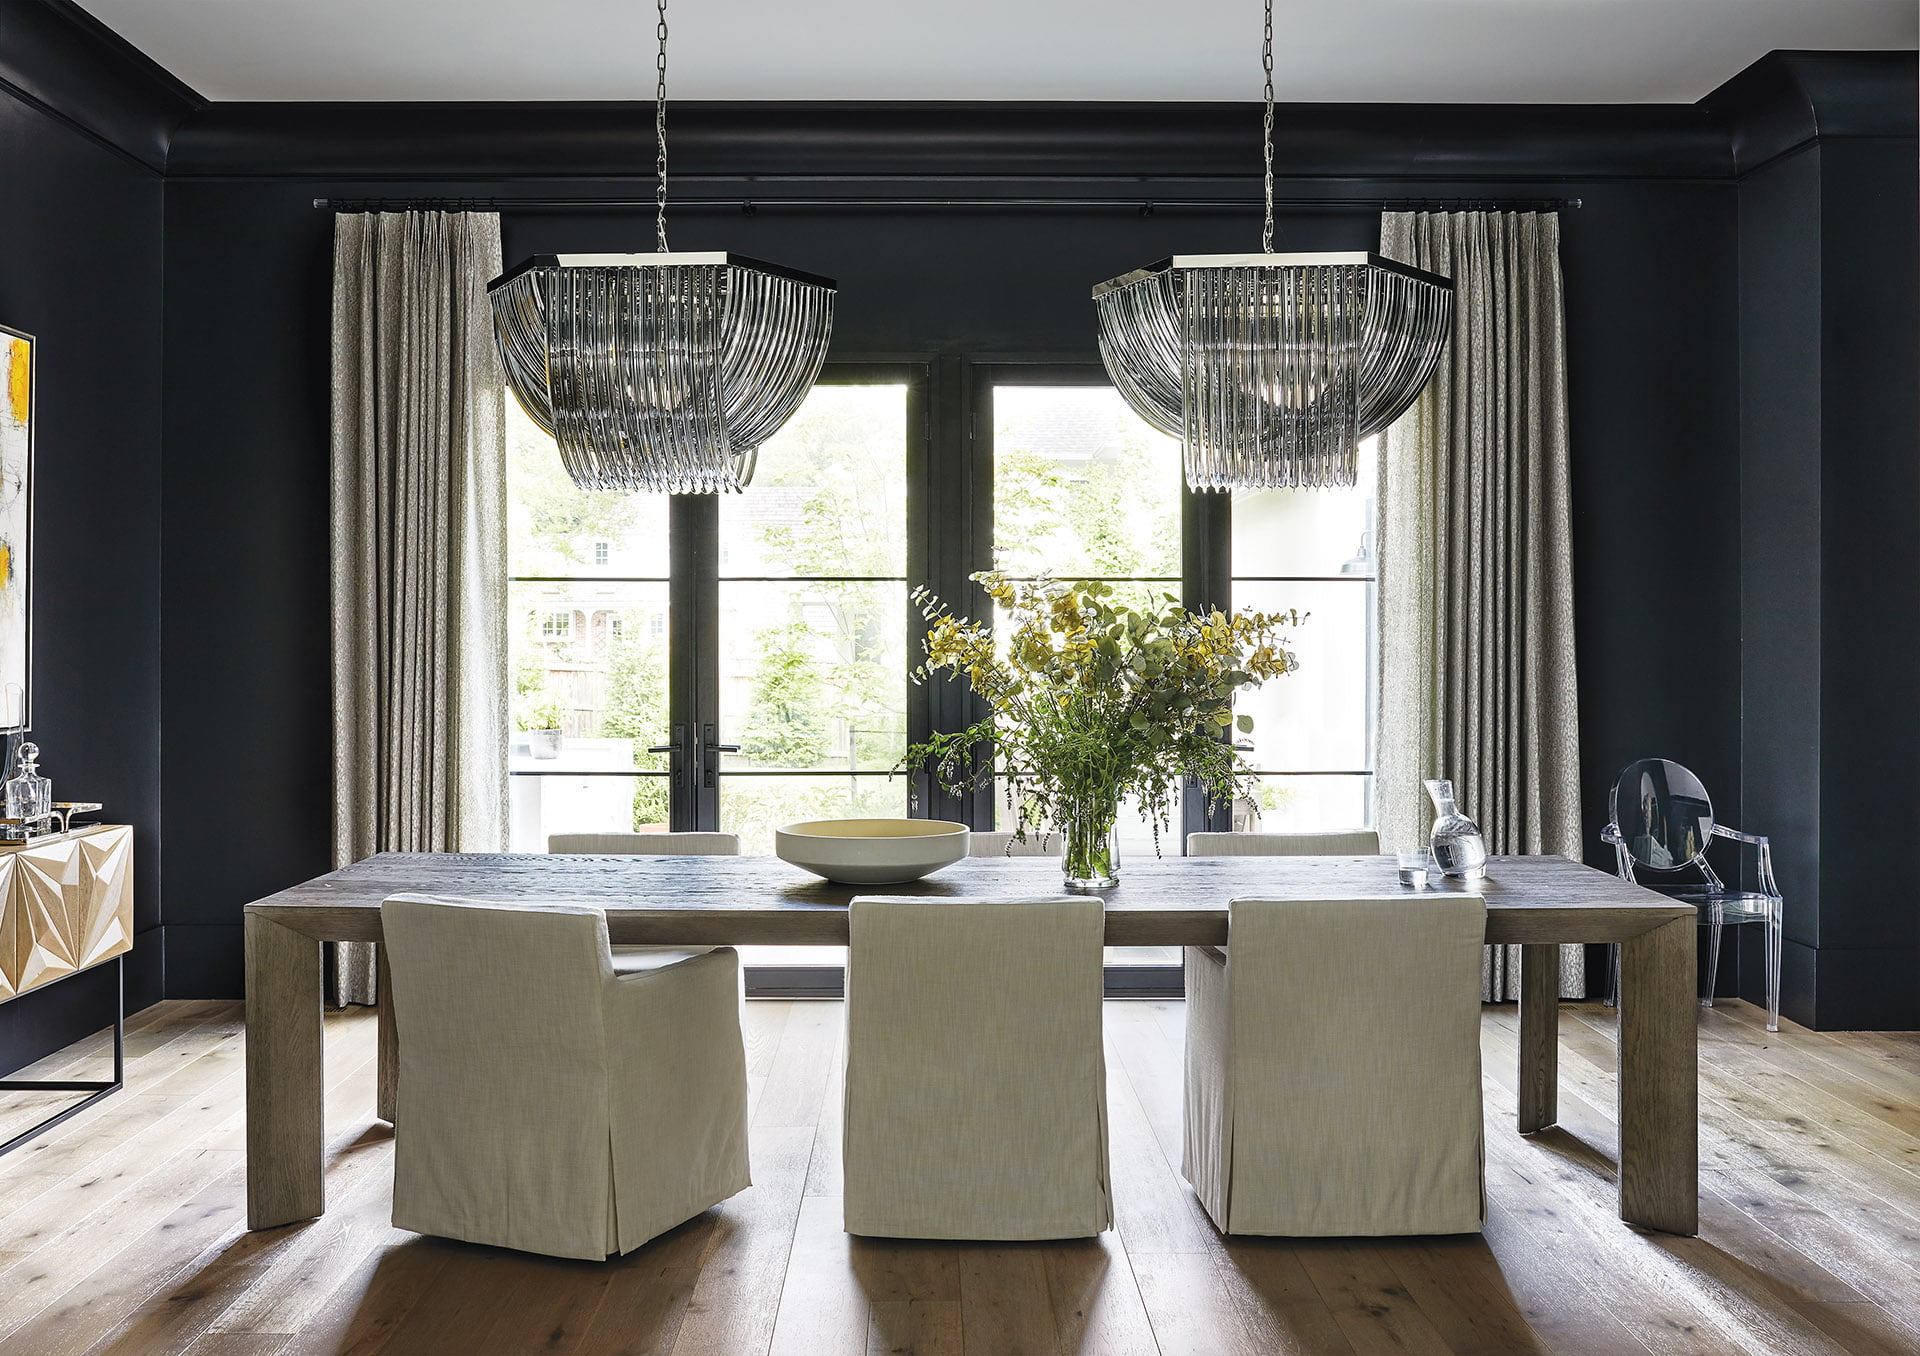 Dining room chandeliers from Sunpan and Jeffrey Alan Marks draperies.